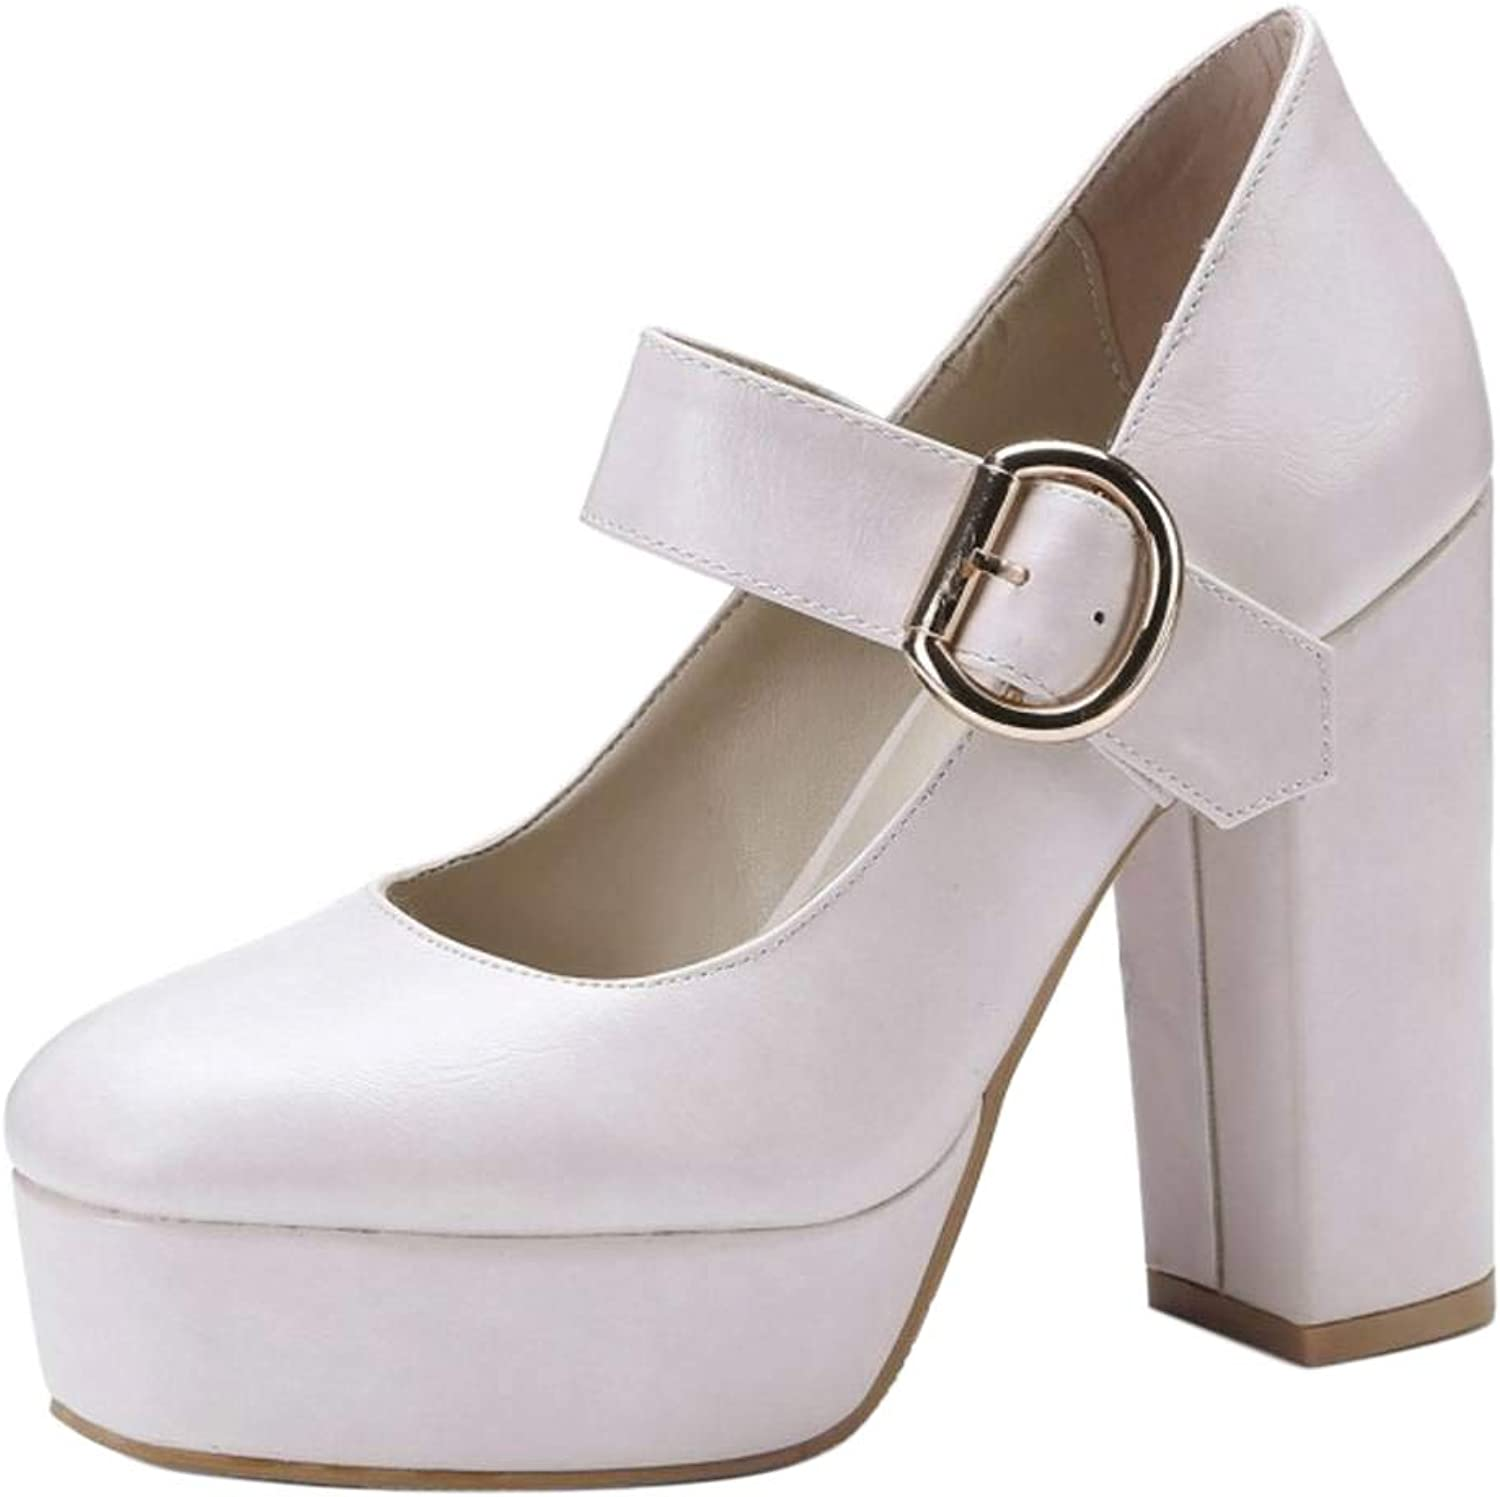 CularAcci Women Comfort Block Heel Mary Janes shoes